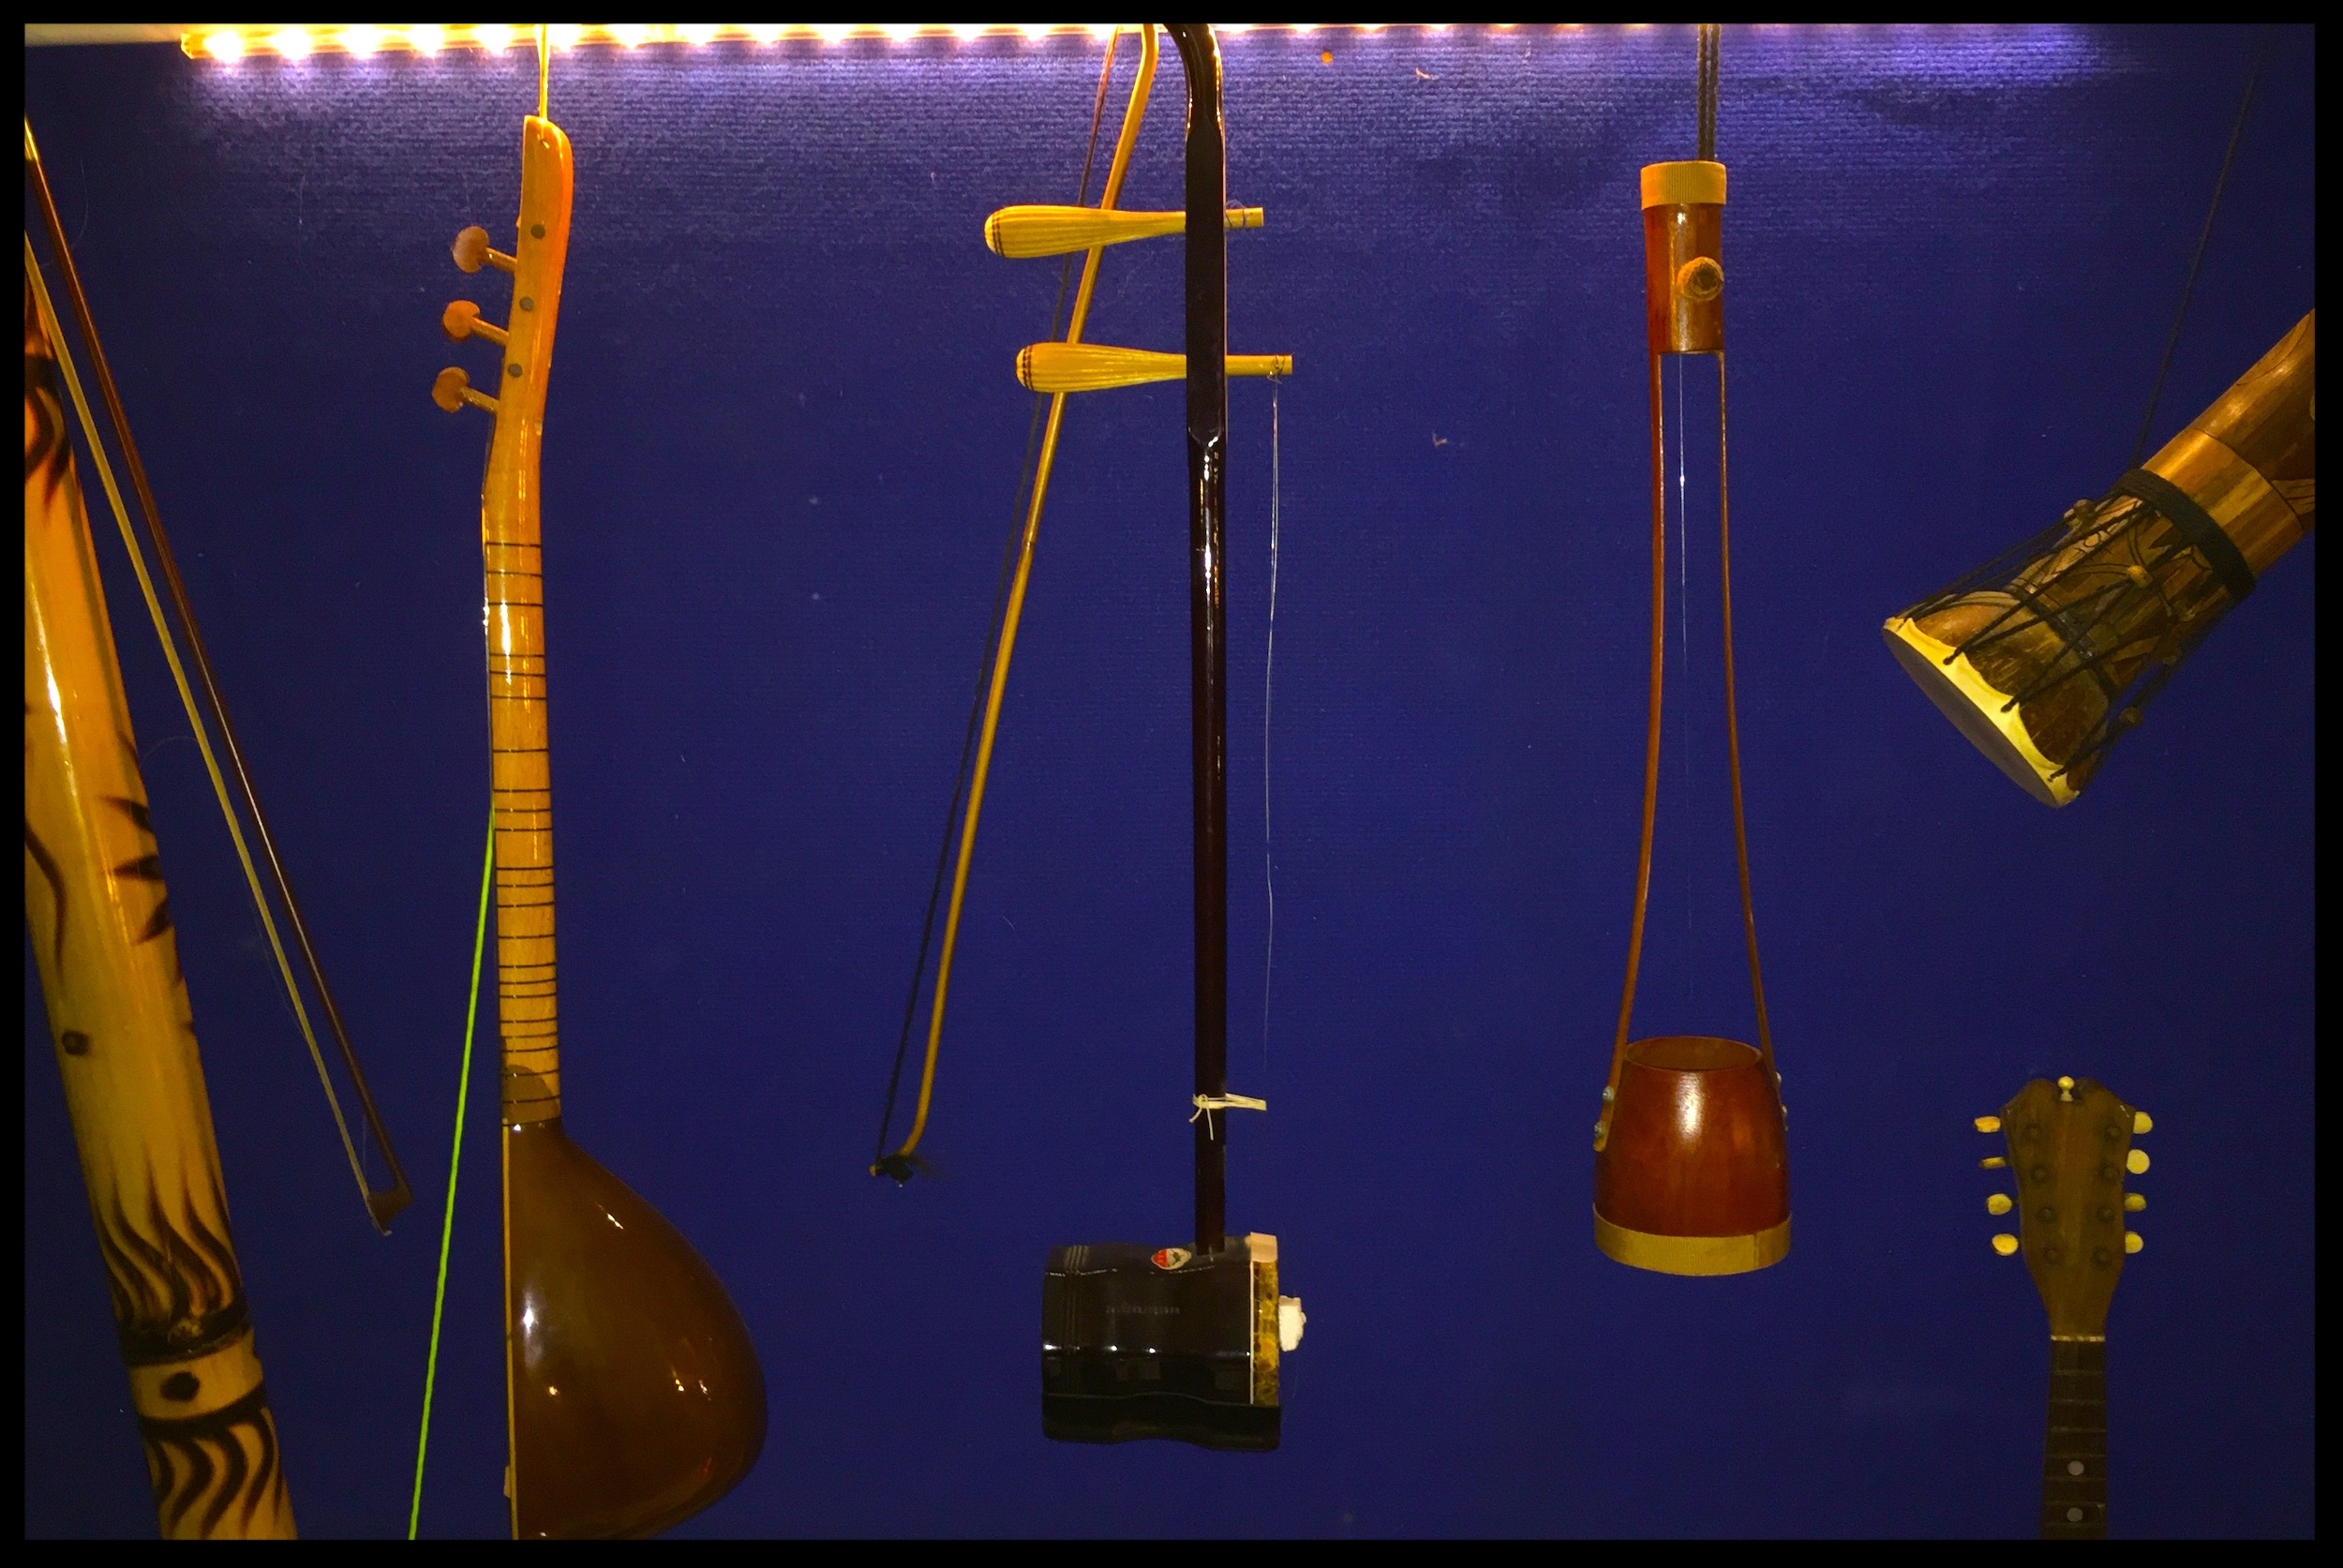 Instruments from every quarter of the world interest us.